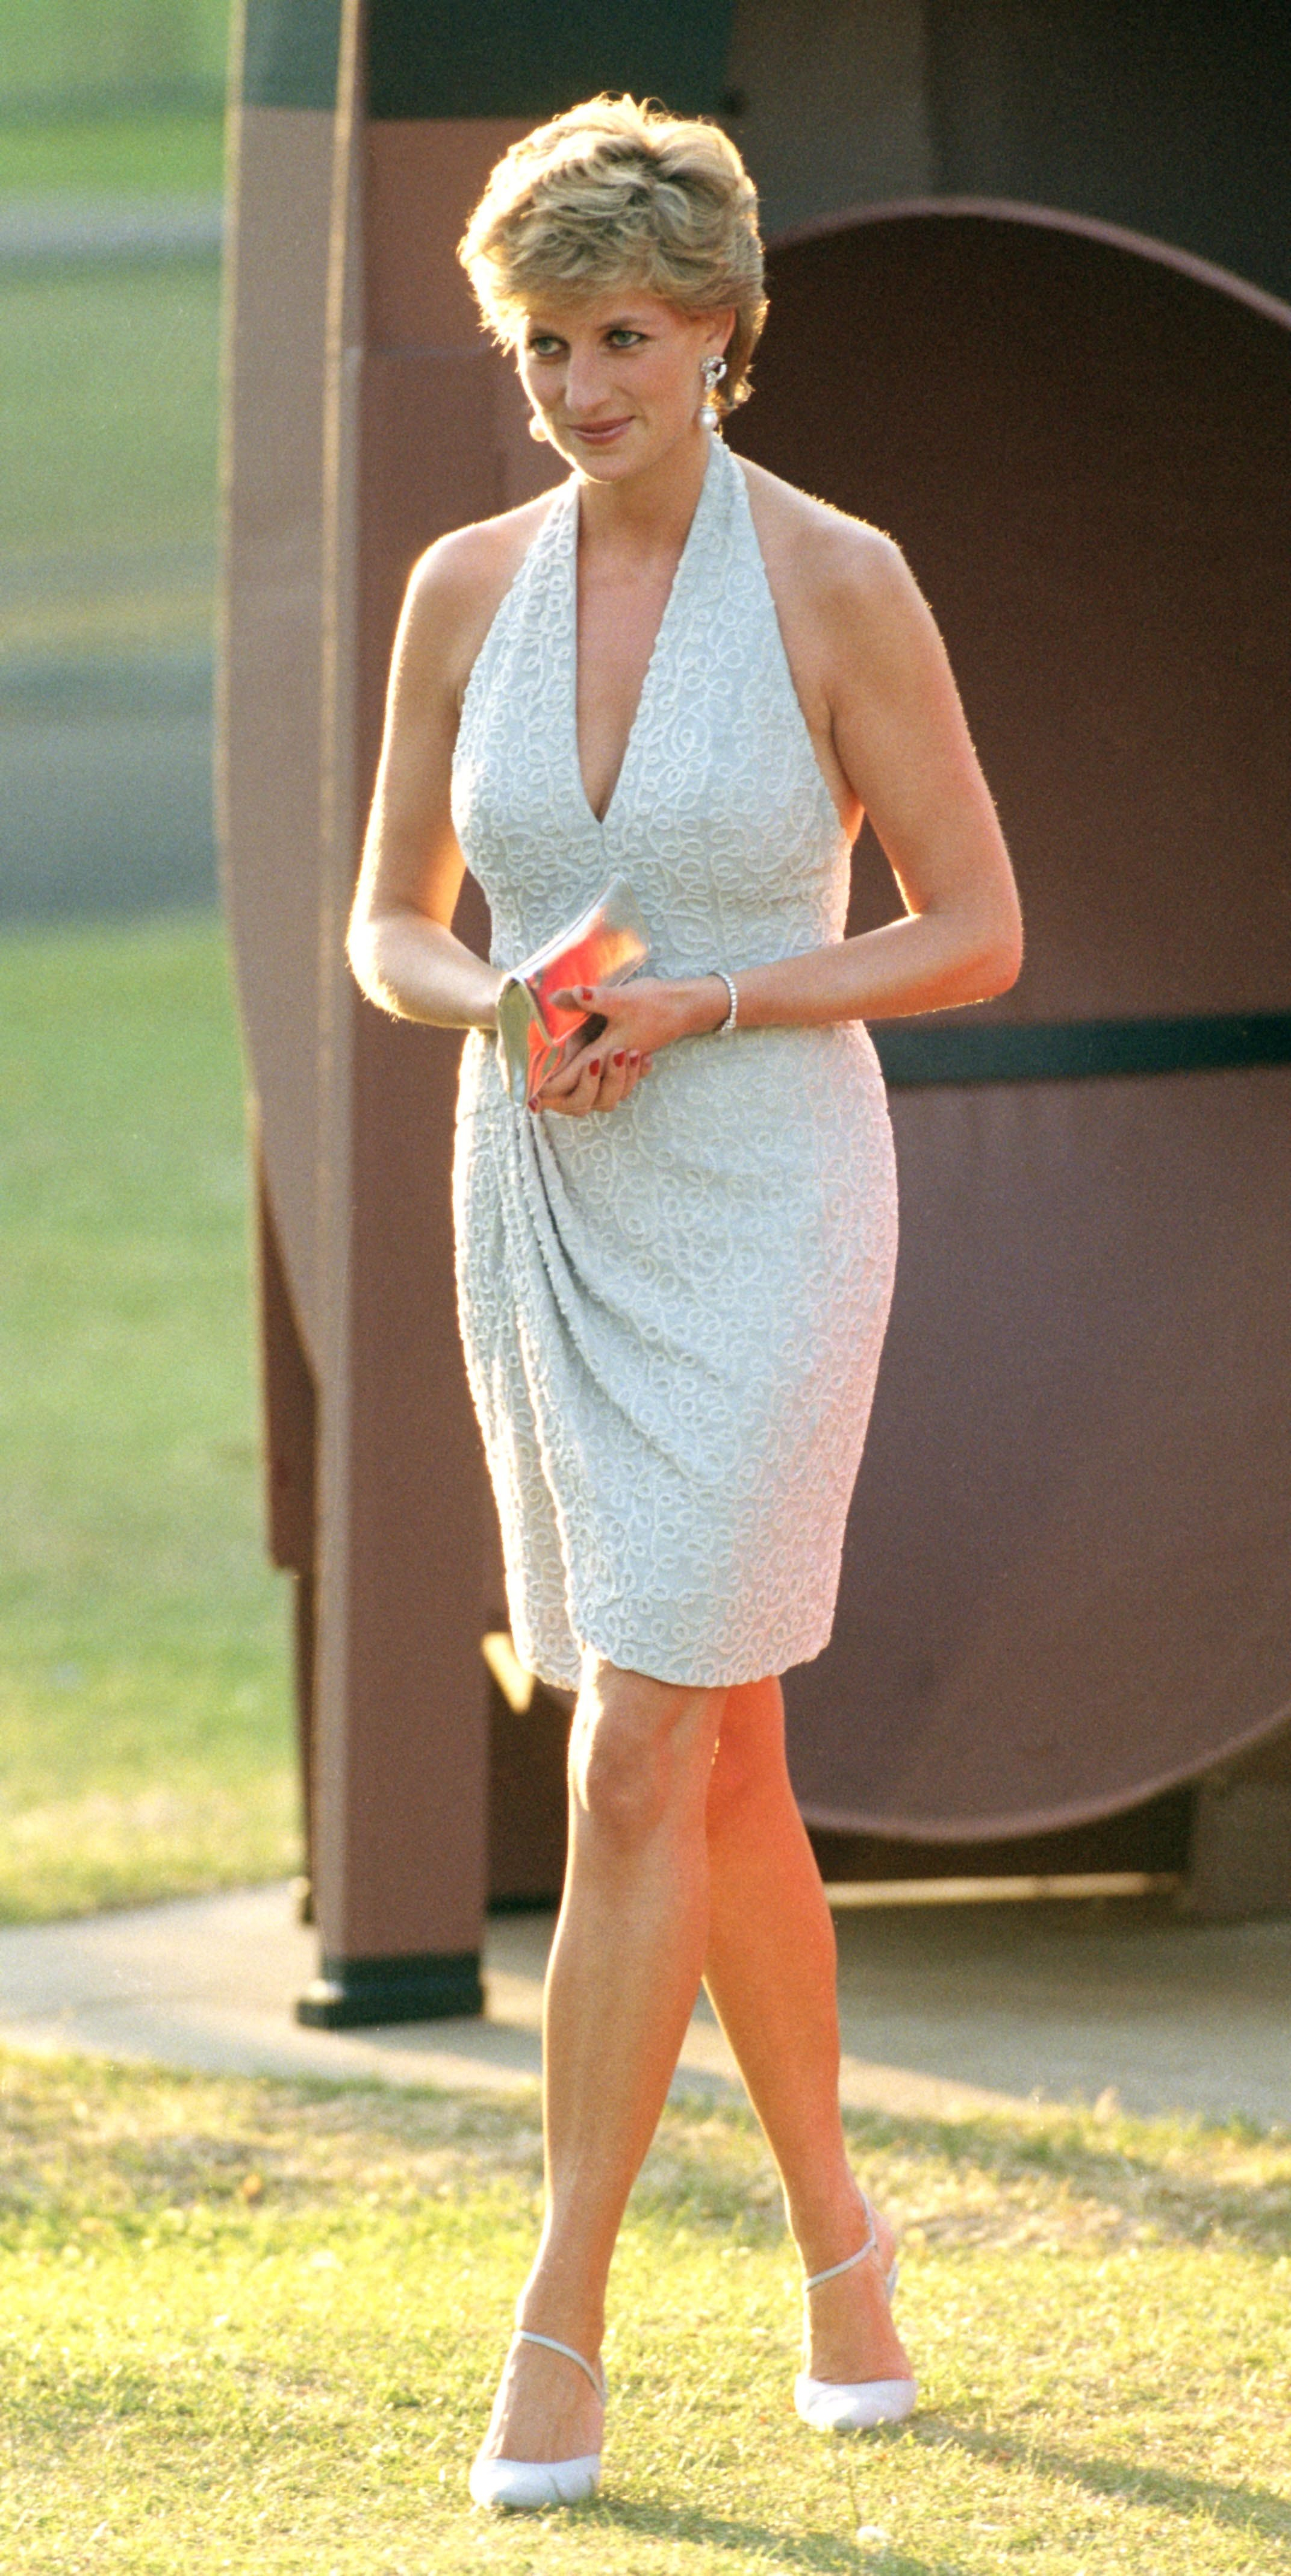 1995: Princess Diana - The Most Iconic Royal Outfit From